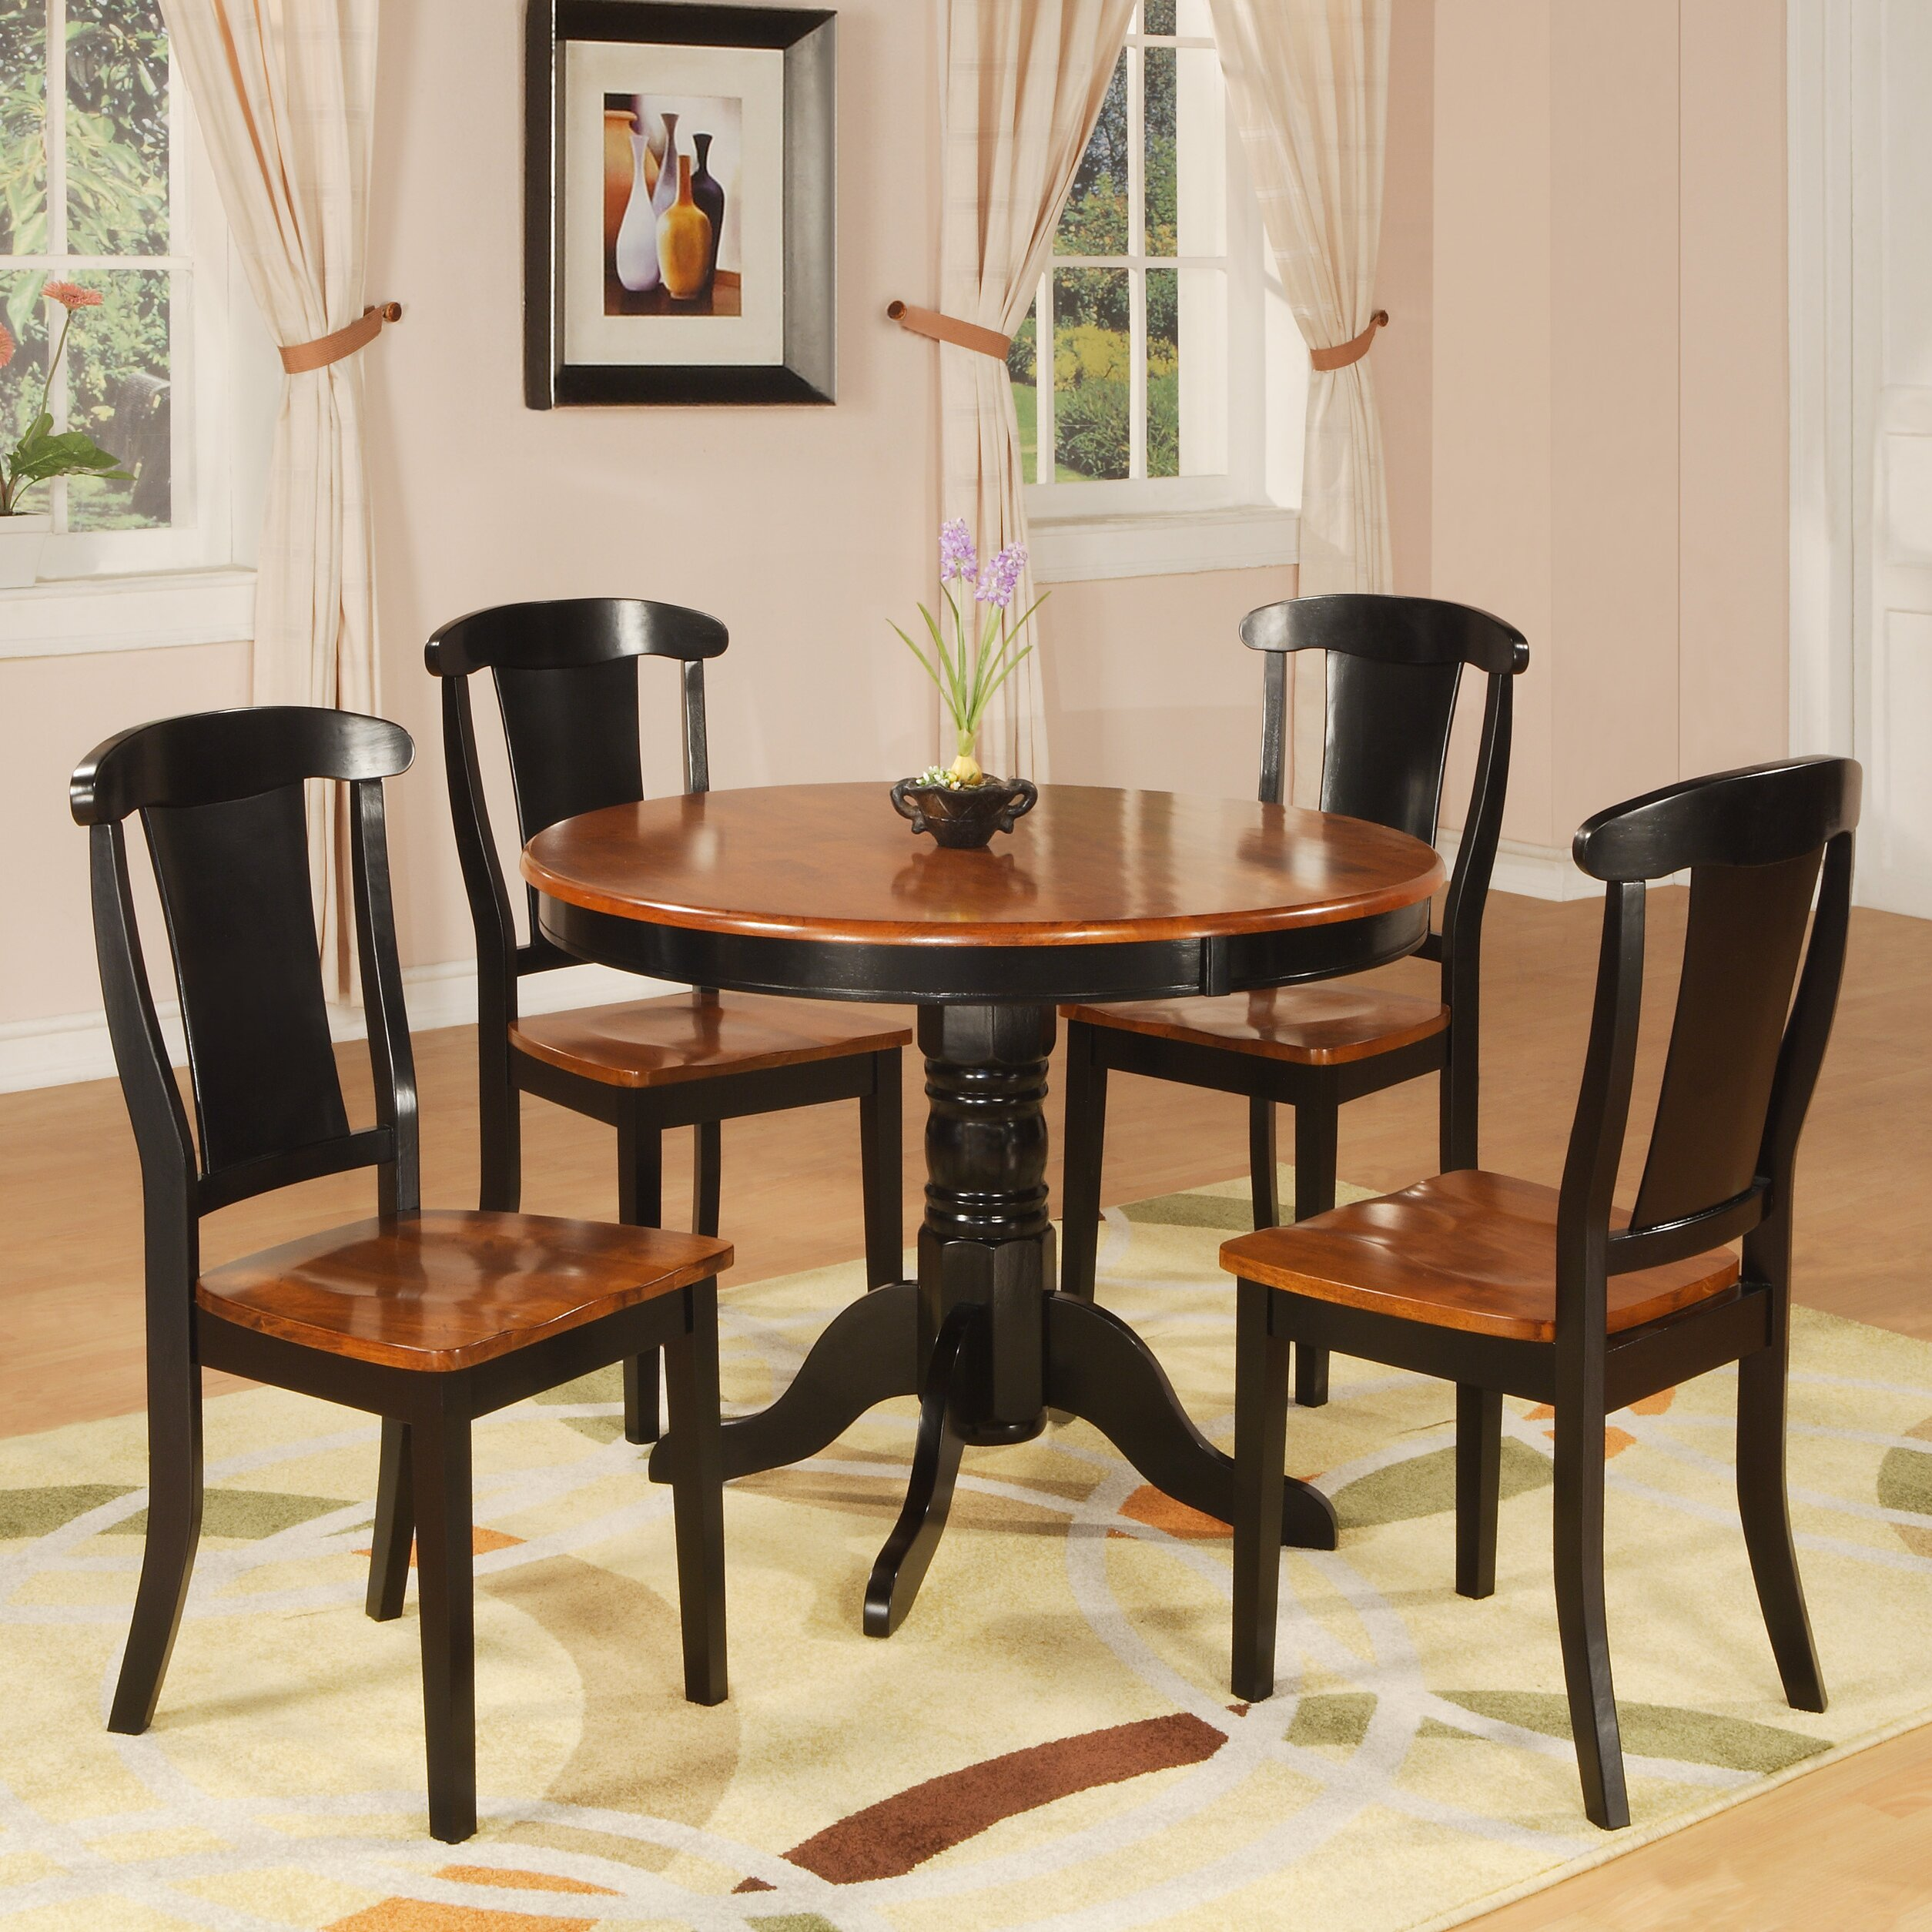 Hazelwood home hazelwood home 5 piece dining set reviews for 5 piece dining set under 200